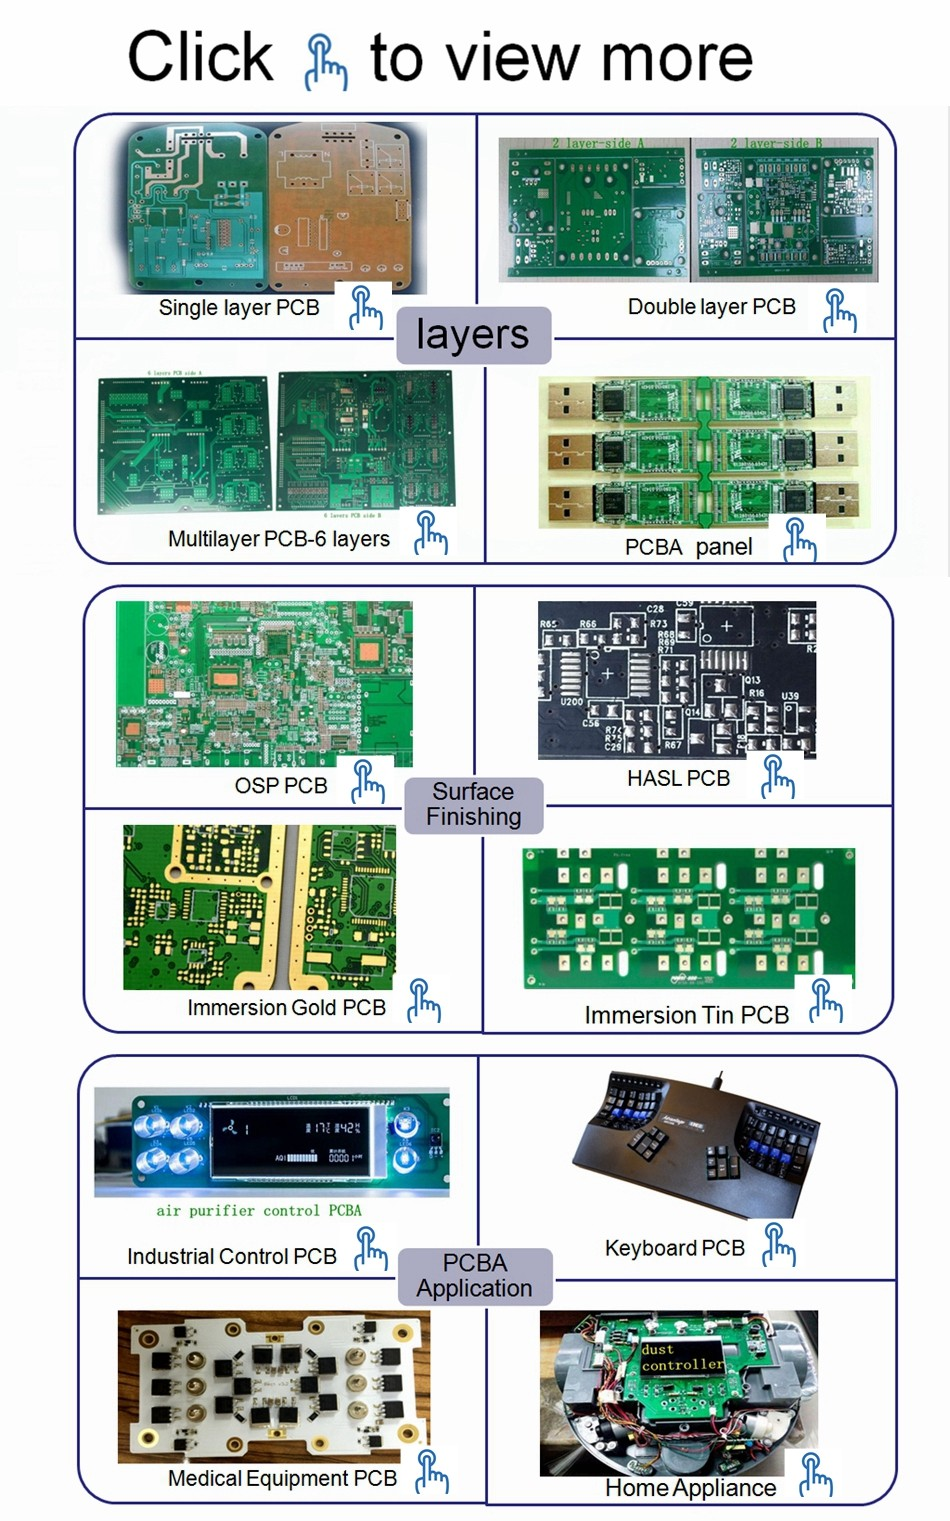 Pcb Assembly For Led Light Fixture With Bare Fabrication Smt Dip Pcba Suitable Camera Circuit Board And Electronic 2 Photobank